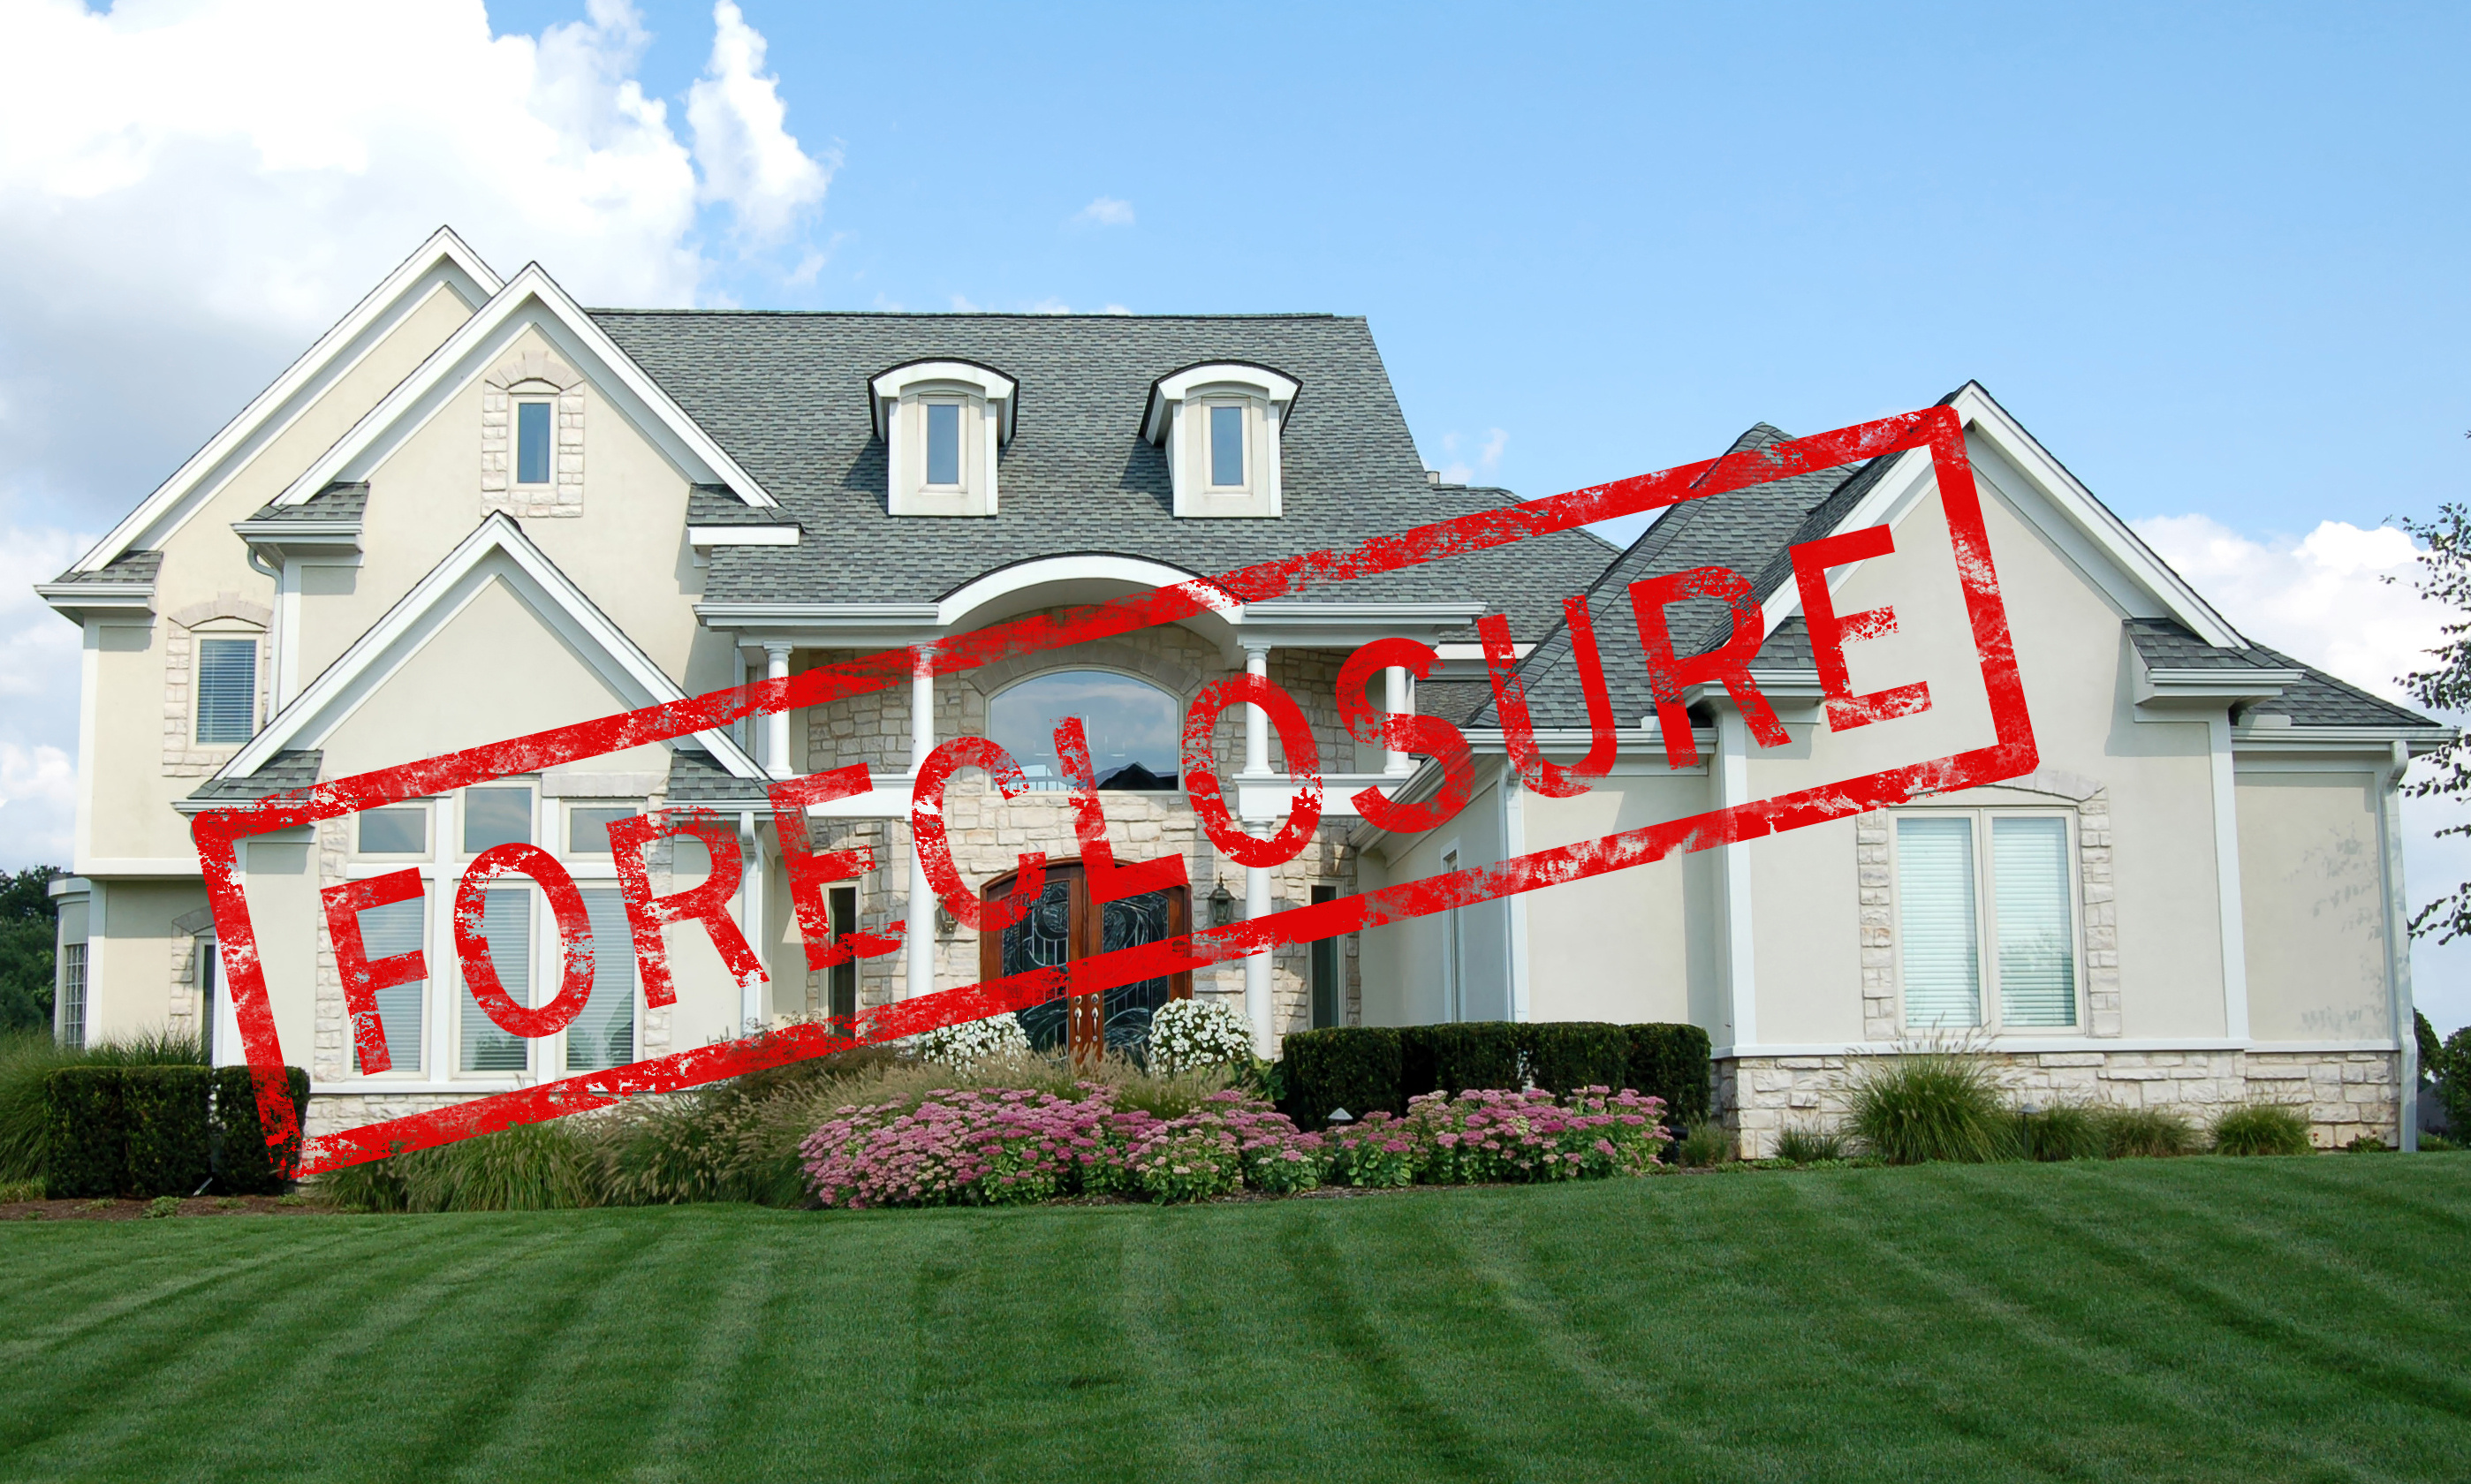 Call Graham Appraisal to discuss valuations of Barren foreclosures